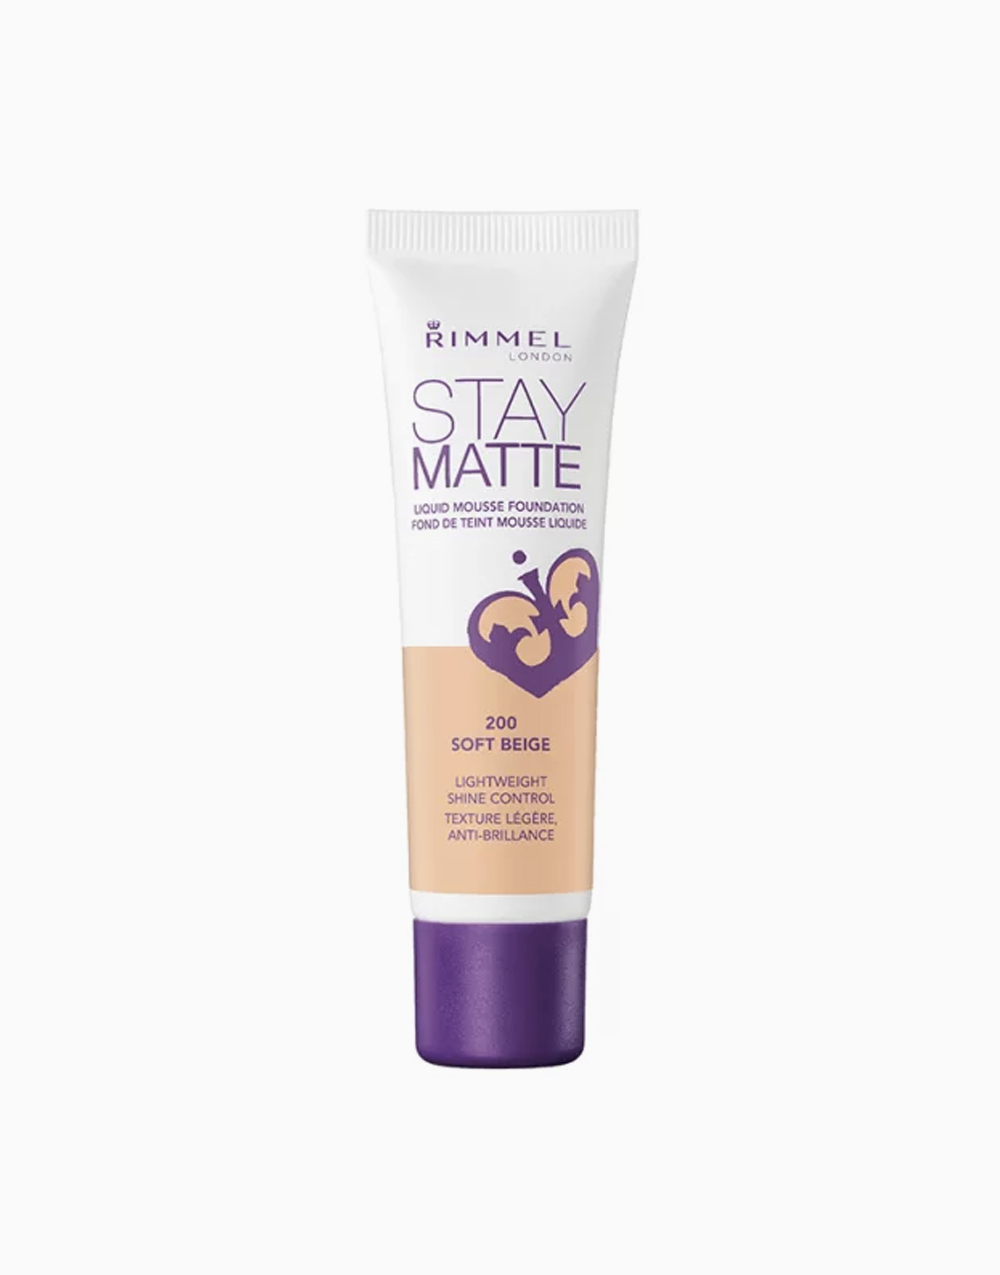 Stay Matte Mousse Foundation by Rimmel | Soft Beige